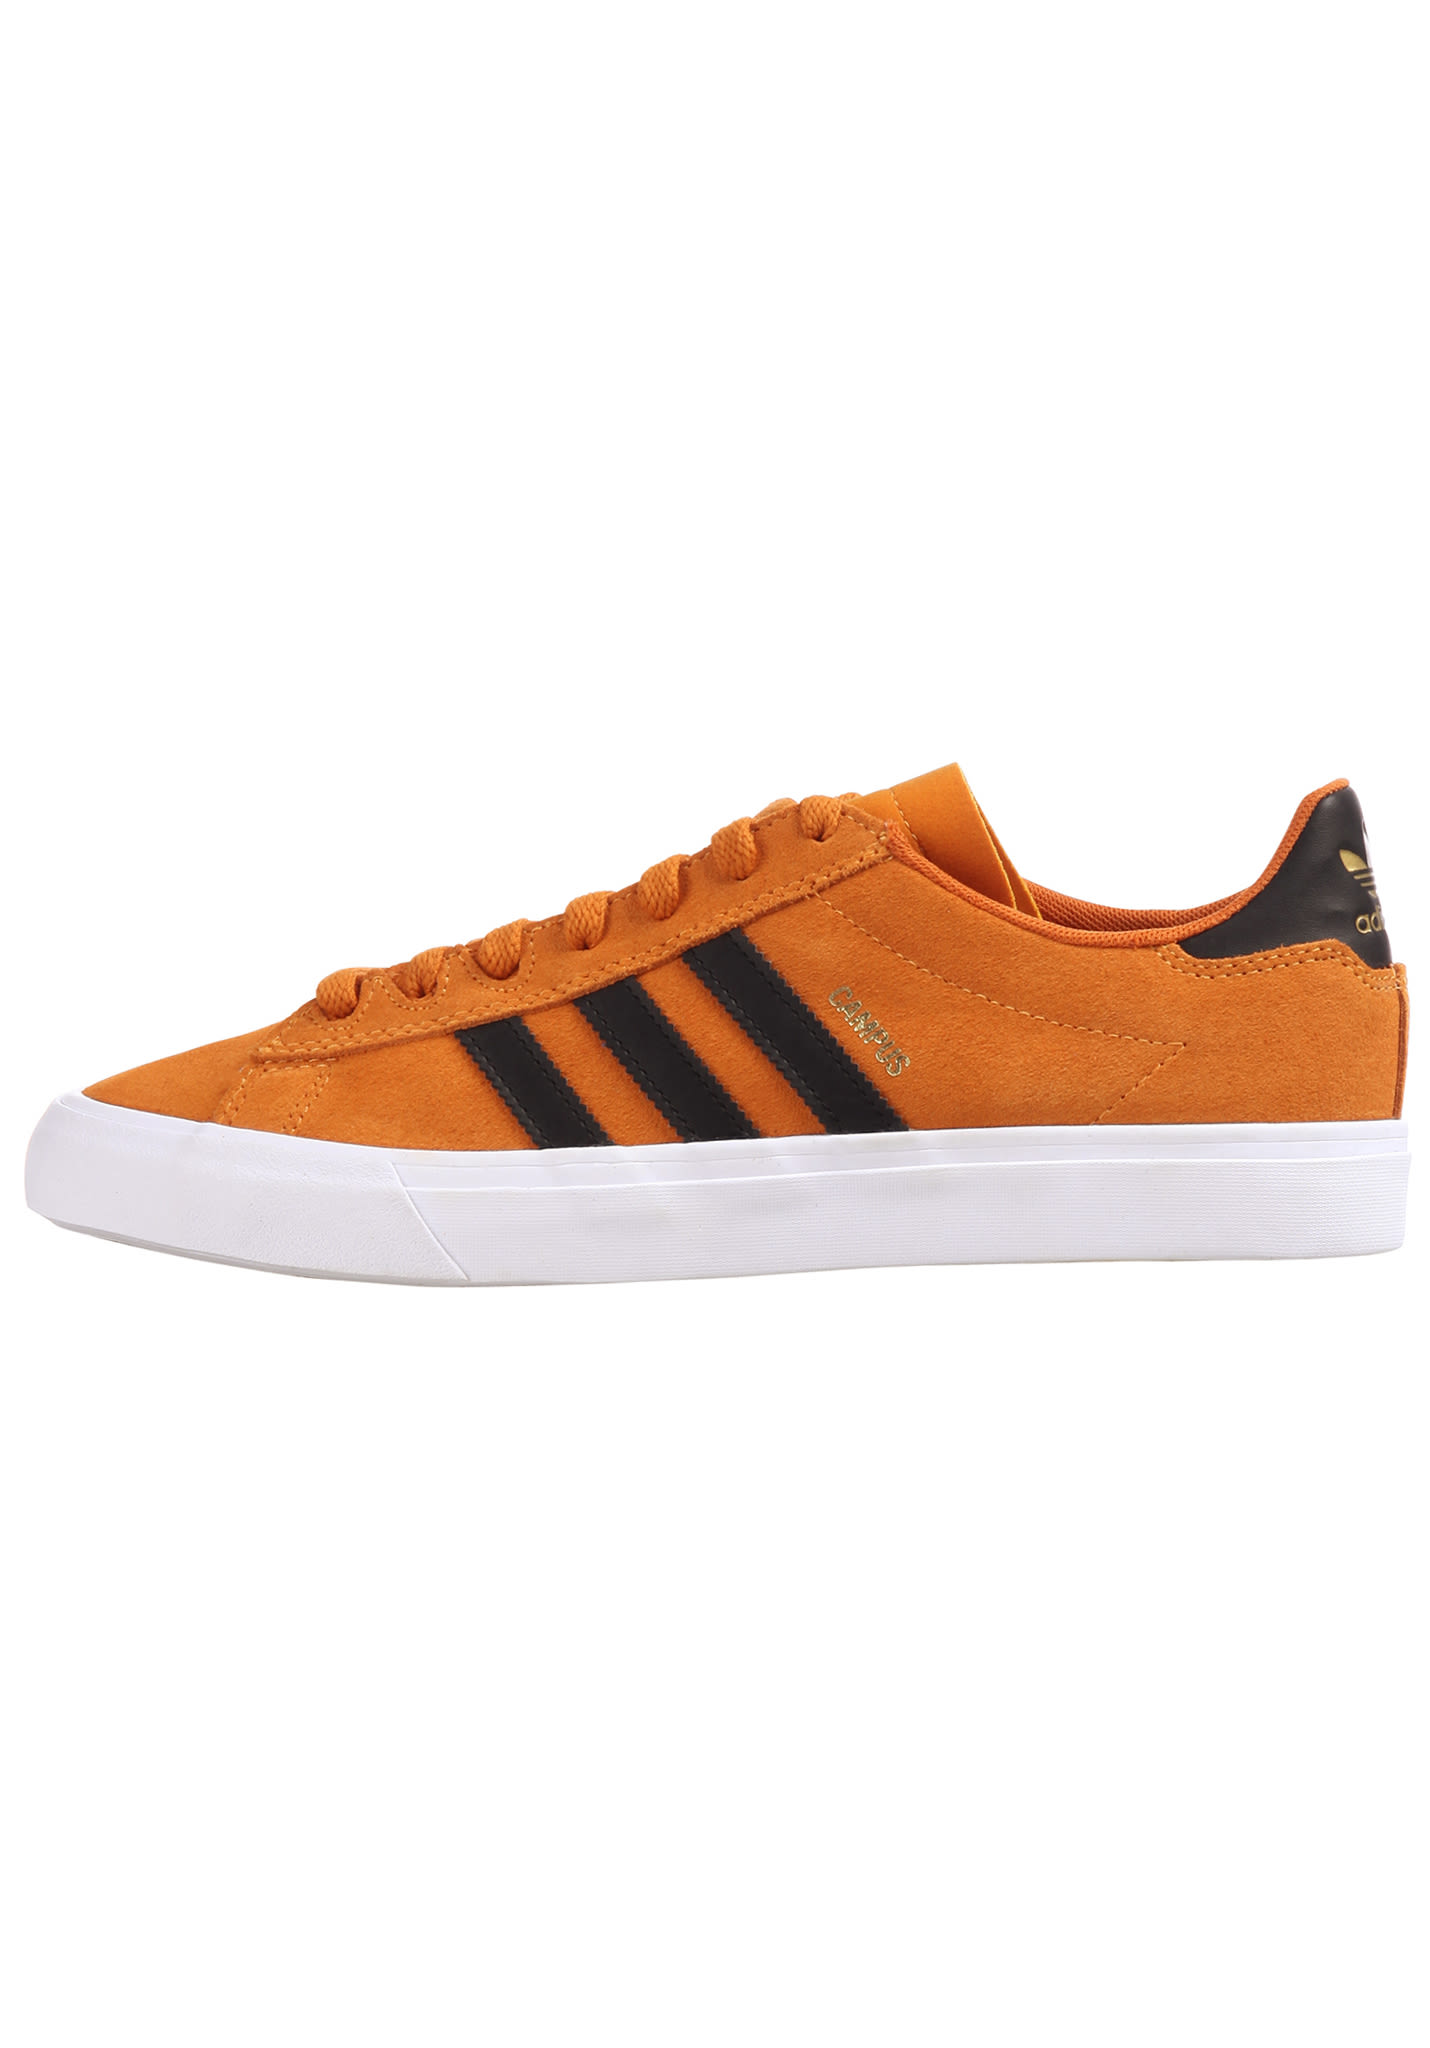 new styles 2d535 b55e2 Adidas Skateboarding Campus Vulc II - Sneakers voor Heren - Oranje - Planet  Sports